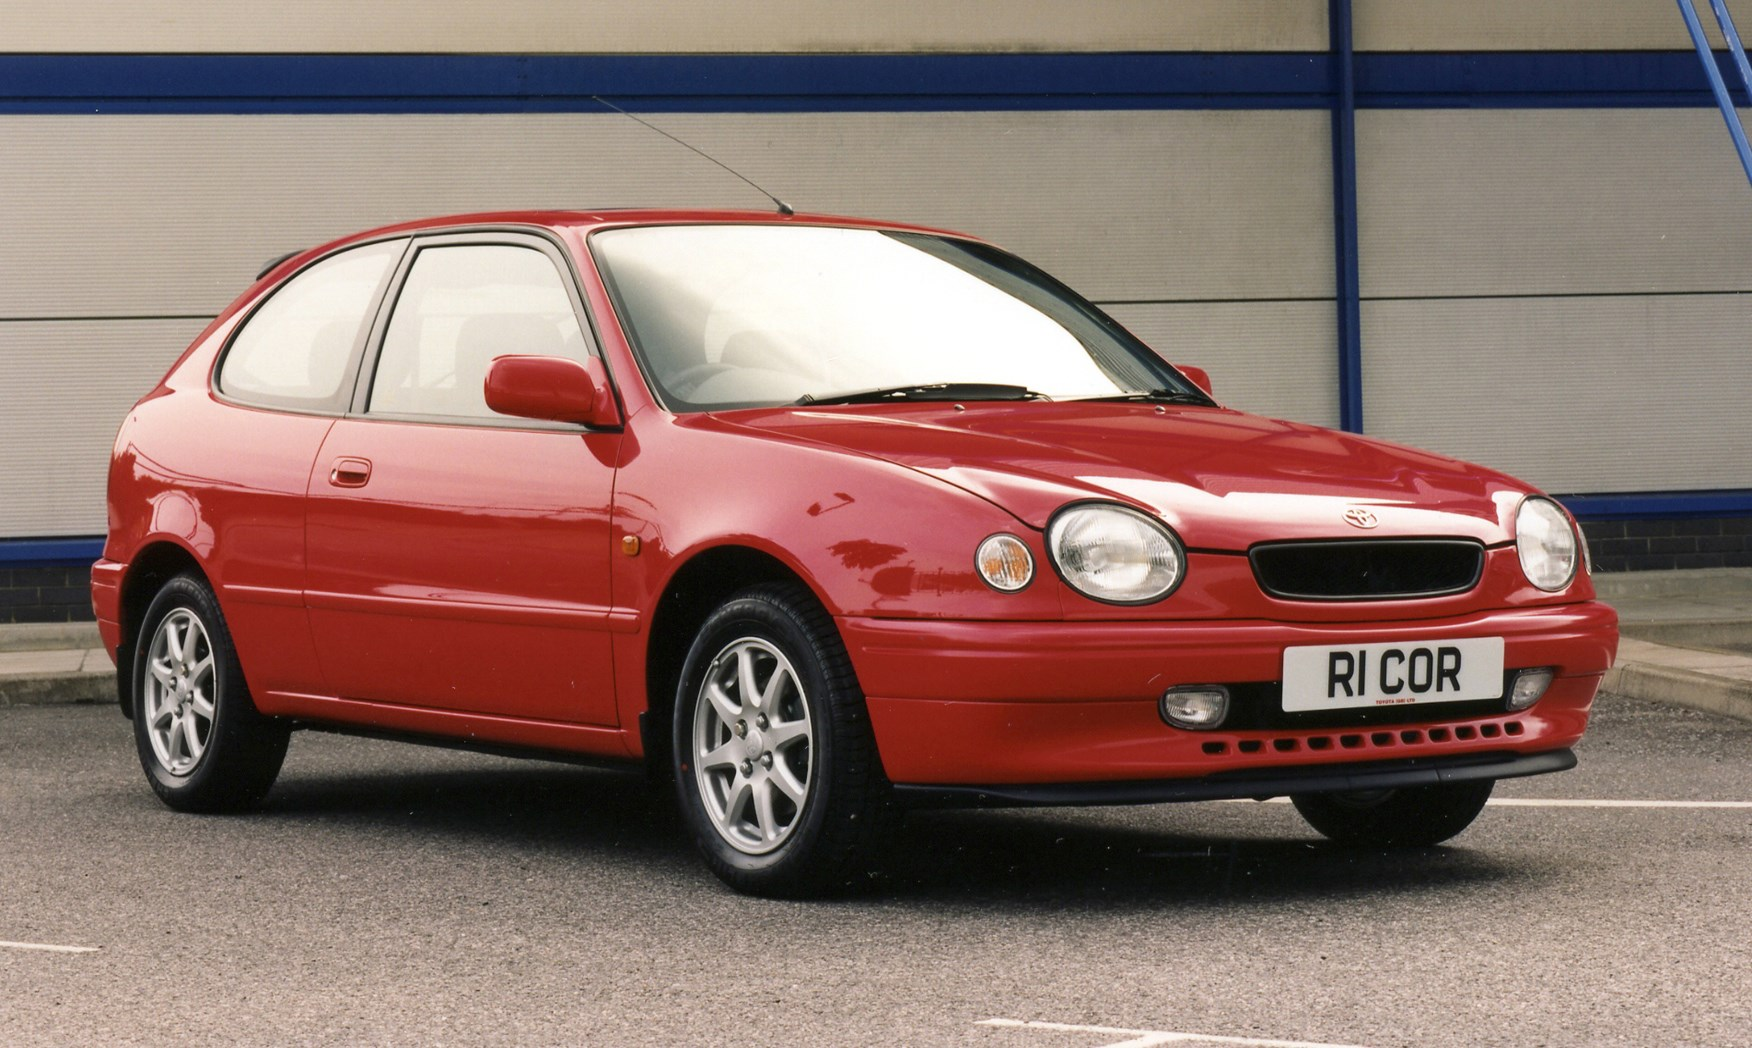 toyota corolla hatchback review (1997 - 2000) | parkers